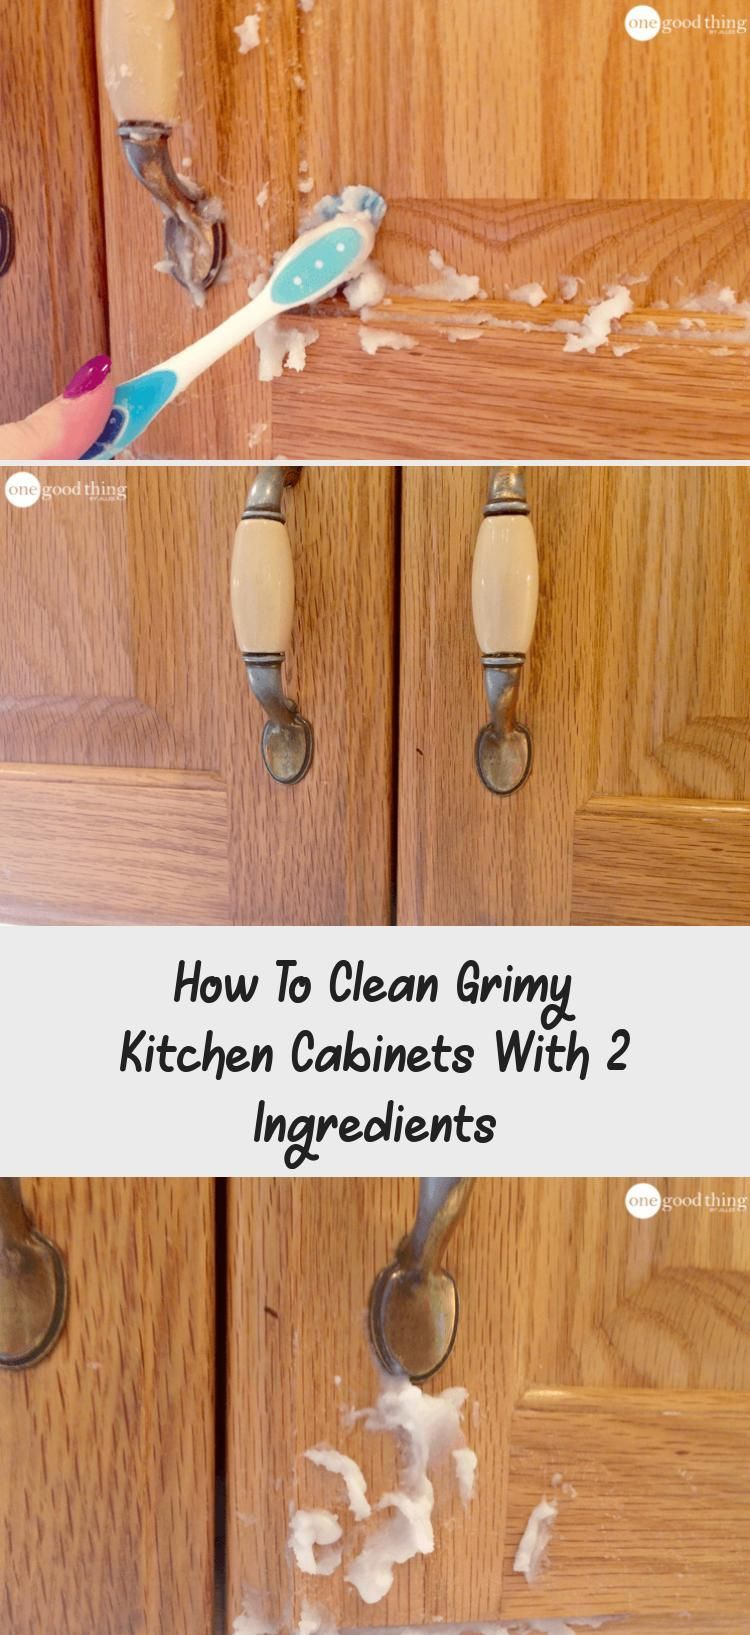 Hottest Pic How To Clean Grimy Kitchen Cabinets With 2 Ingredients Jillee Carpetcleanerr Popular Trick In 2020 Kitchen Cabinets Carpet Cleaner Vacuum Cleaning